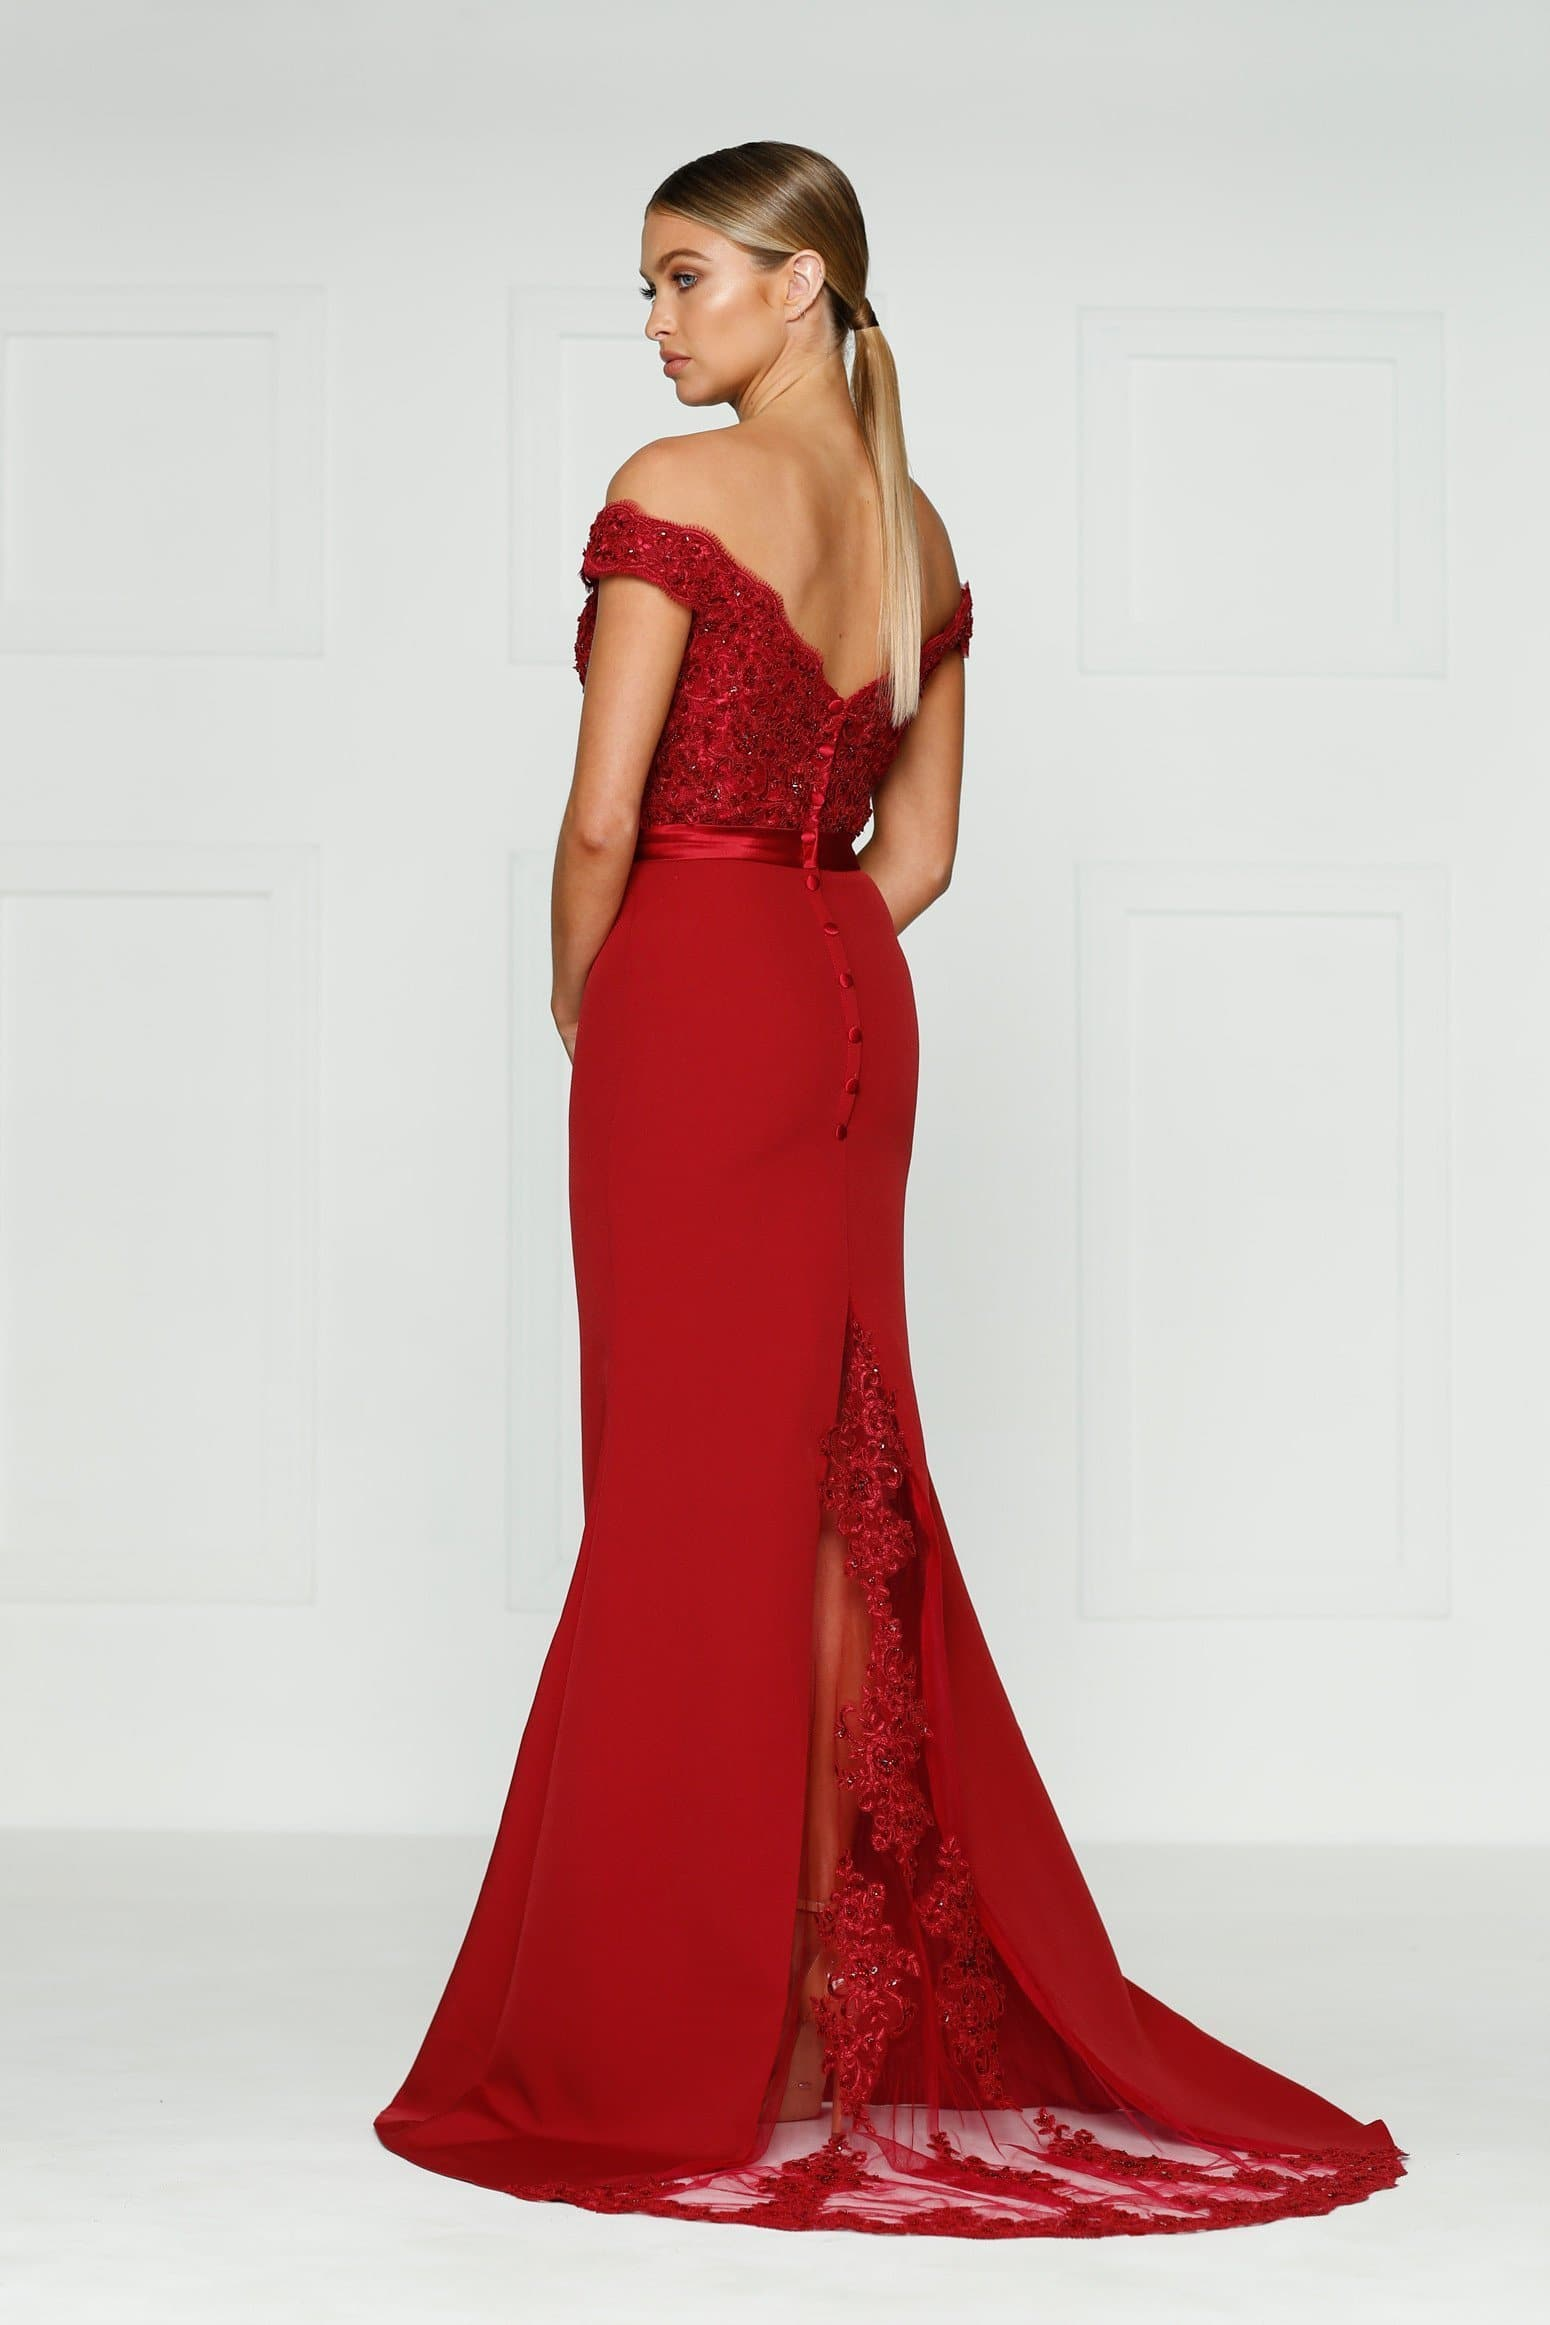 Sandy Formal Dress - Wine Red Lace Off-Shoulder Mermaid Gown